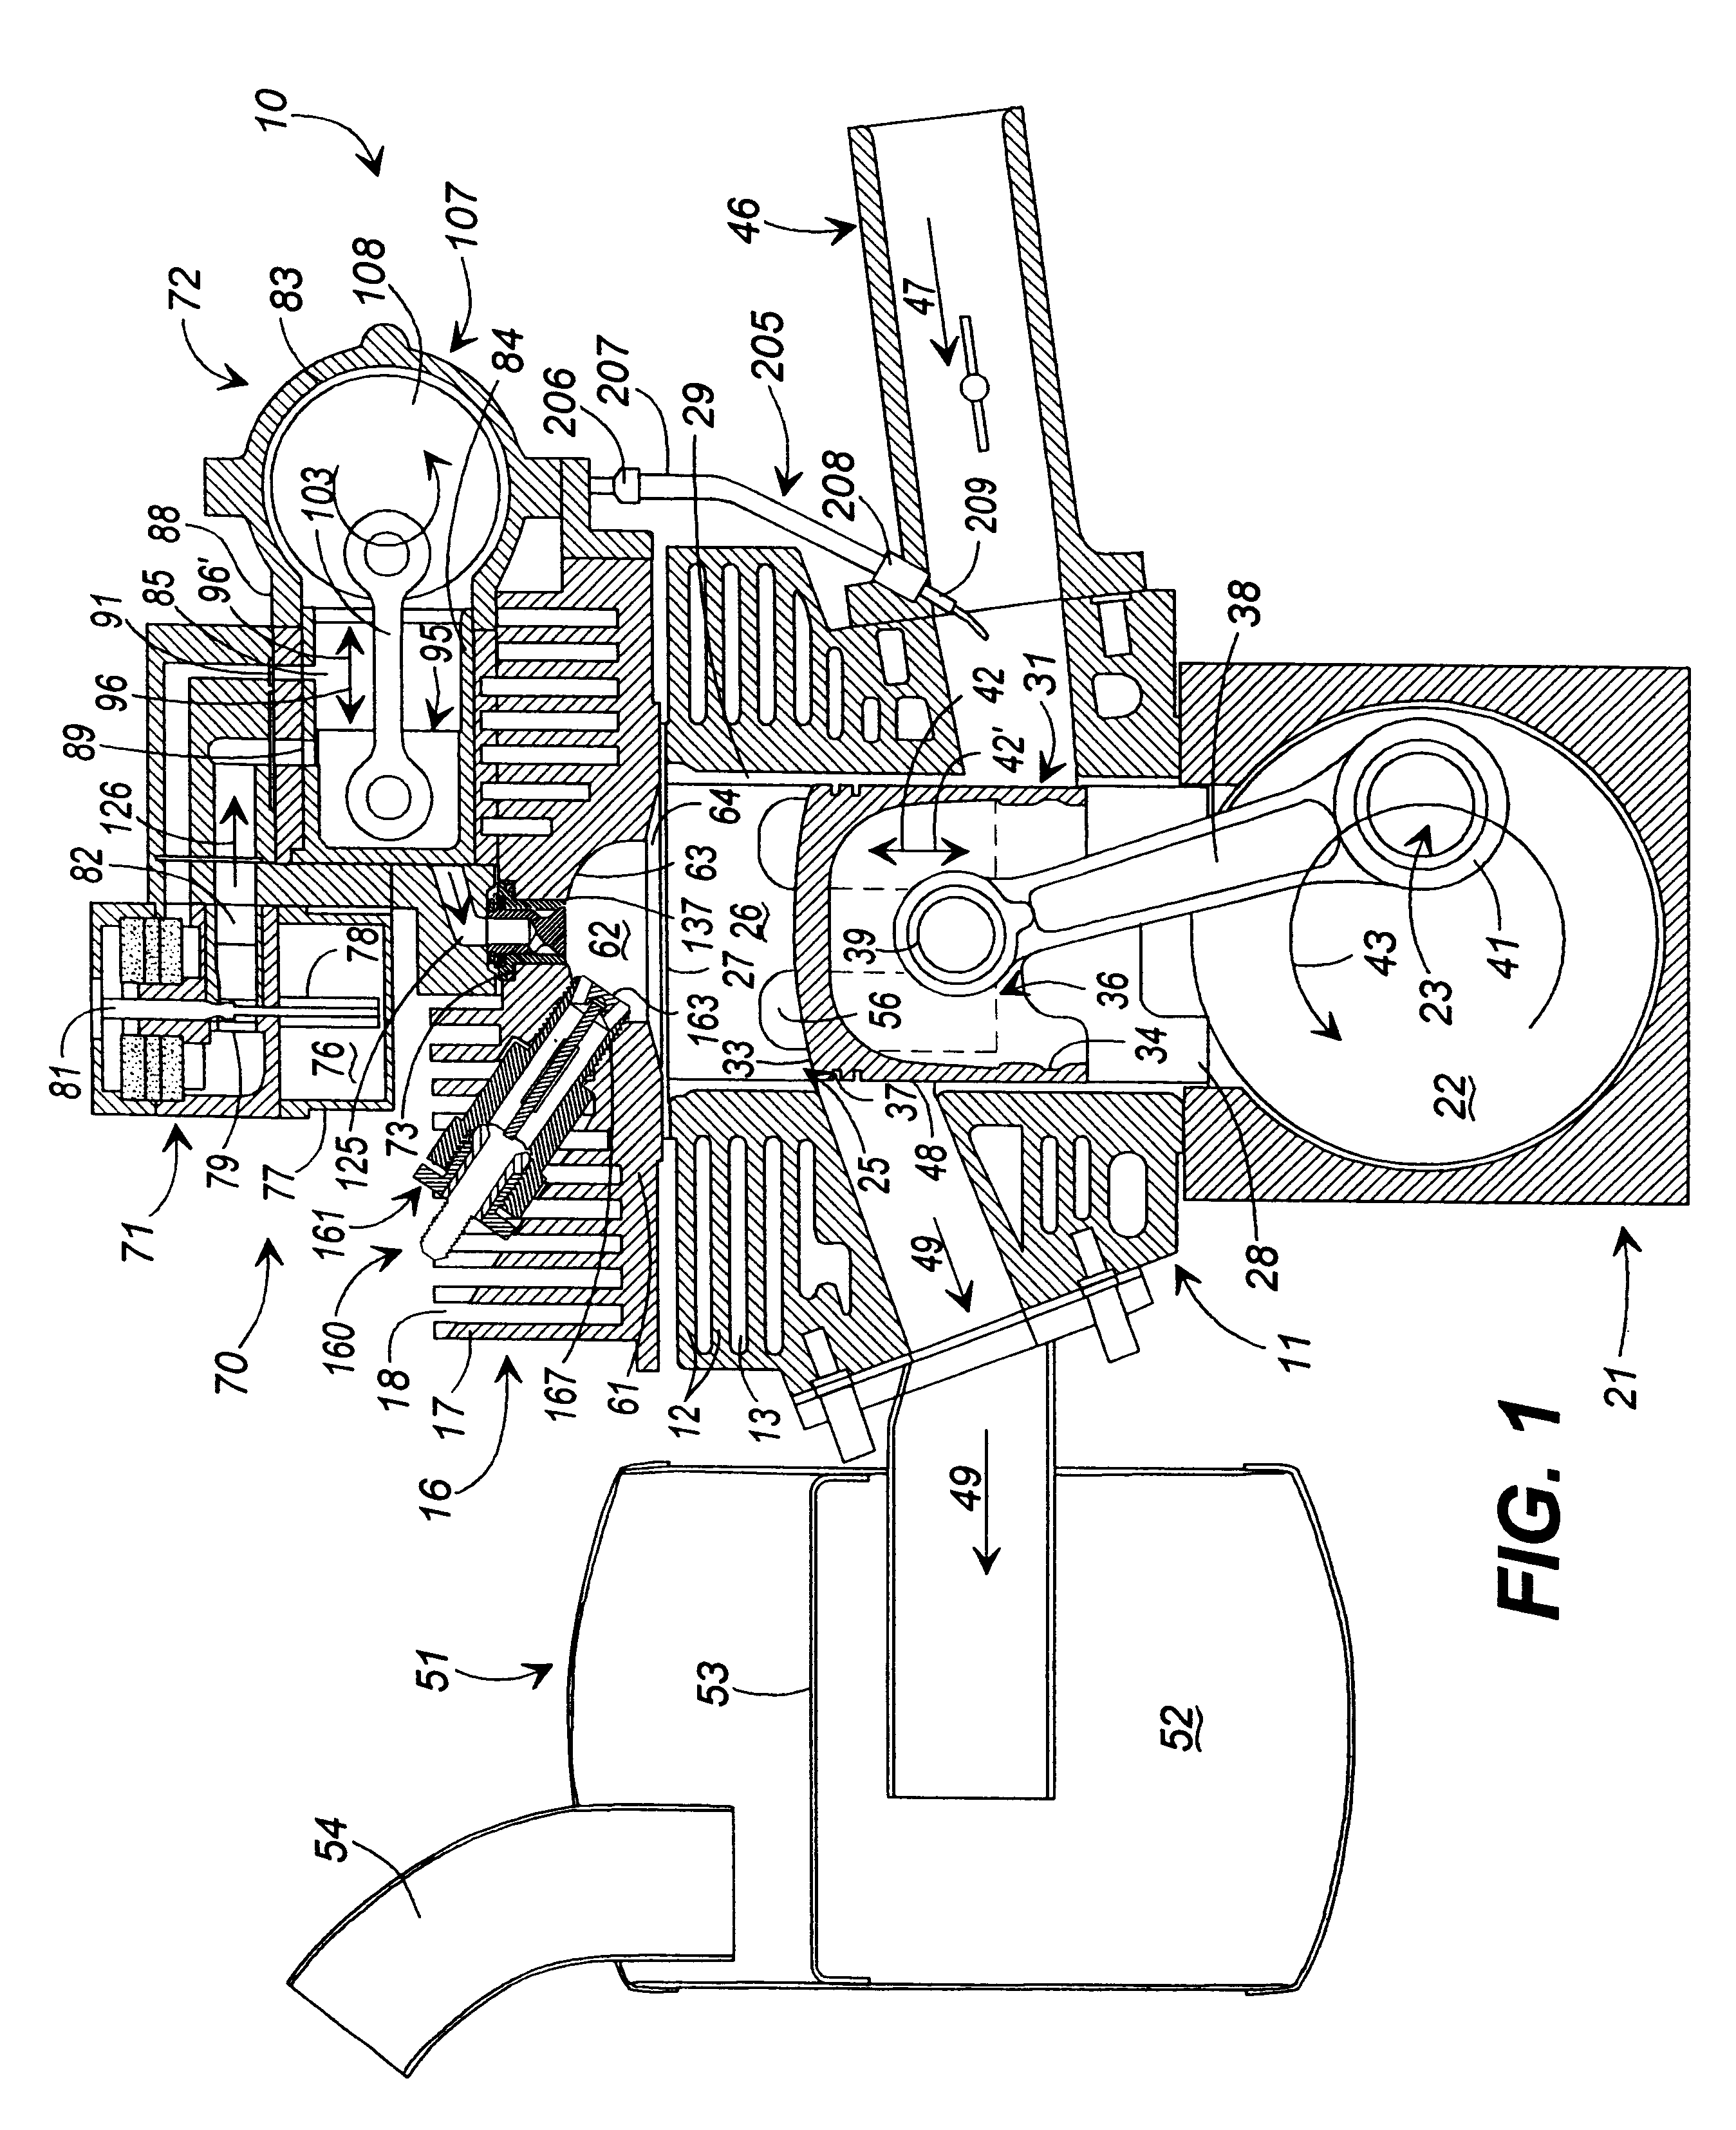 Turbojet Turbine Engine Diagram further Helicopter Engine Parts Diagram in addition Aviation Gas Turbine Engine additionally Mini Steam Engine Plans likewise 1976 Johnson Outboard Ignition Switch Diagram Wiring. on gas turbine jet engine diagram